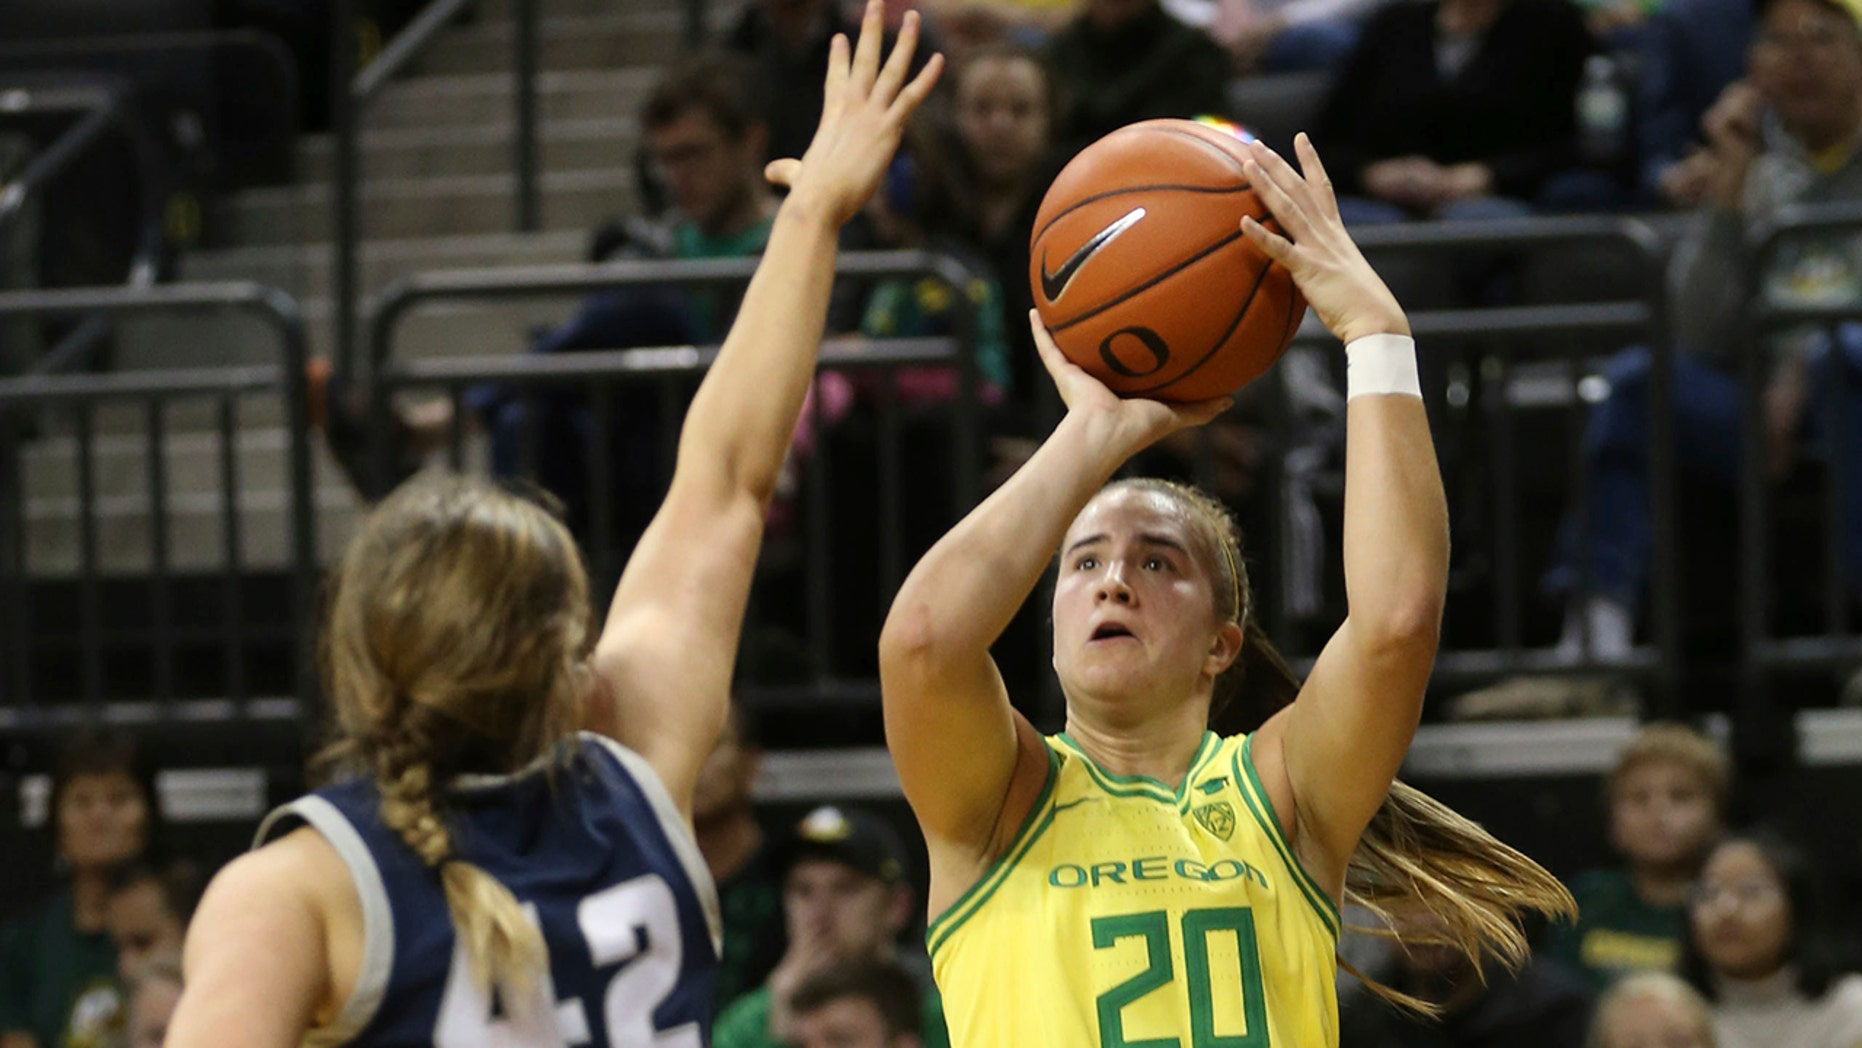 Oregon's Sabrina Ionescu, right, shots over Utah State's Taylor Franson during the second quarter of an NCAA college basketball game in Eugene, Ore., Wednesday, Nov. 13, 2019. (AP Photo/Chris Pietsch)